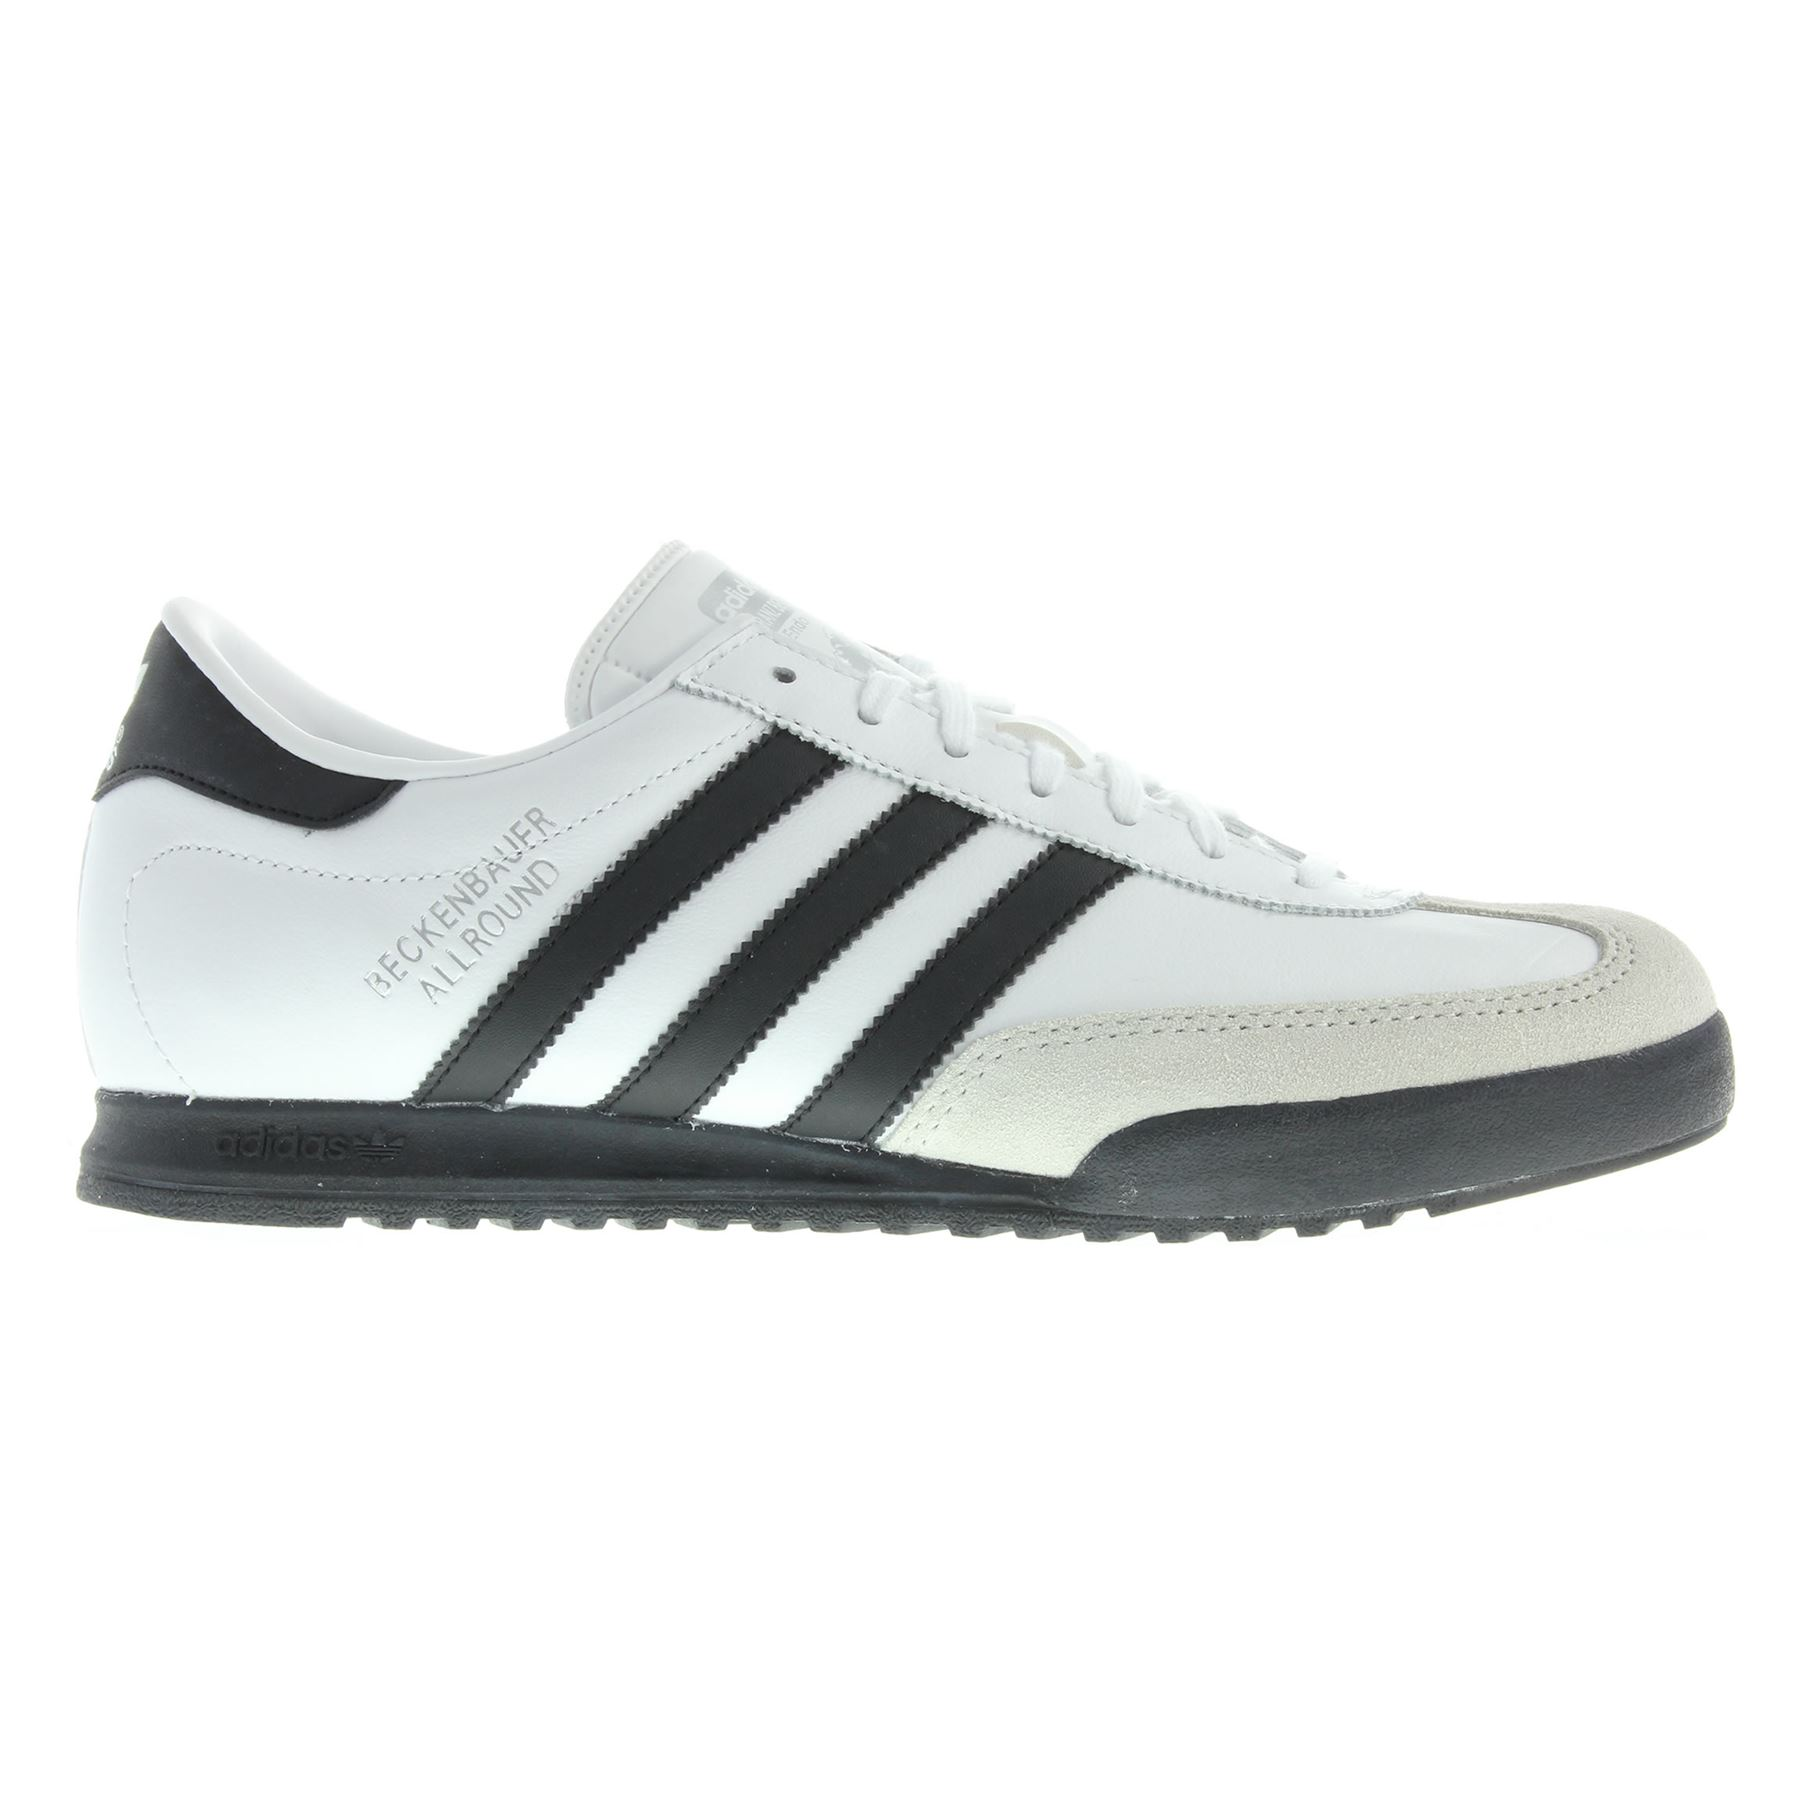 mens white adidas gazelle trainers